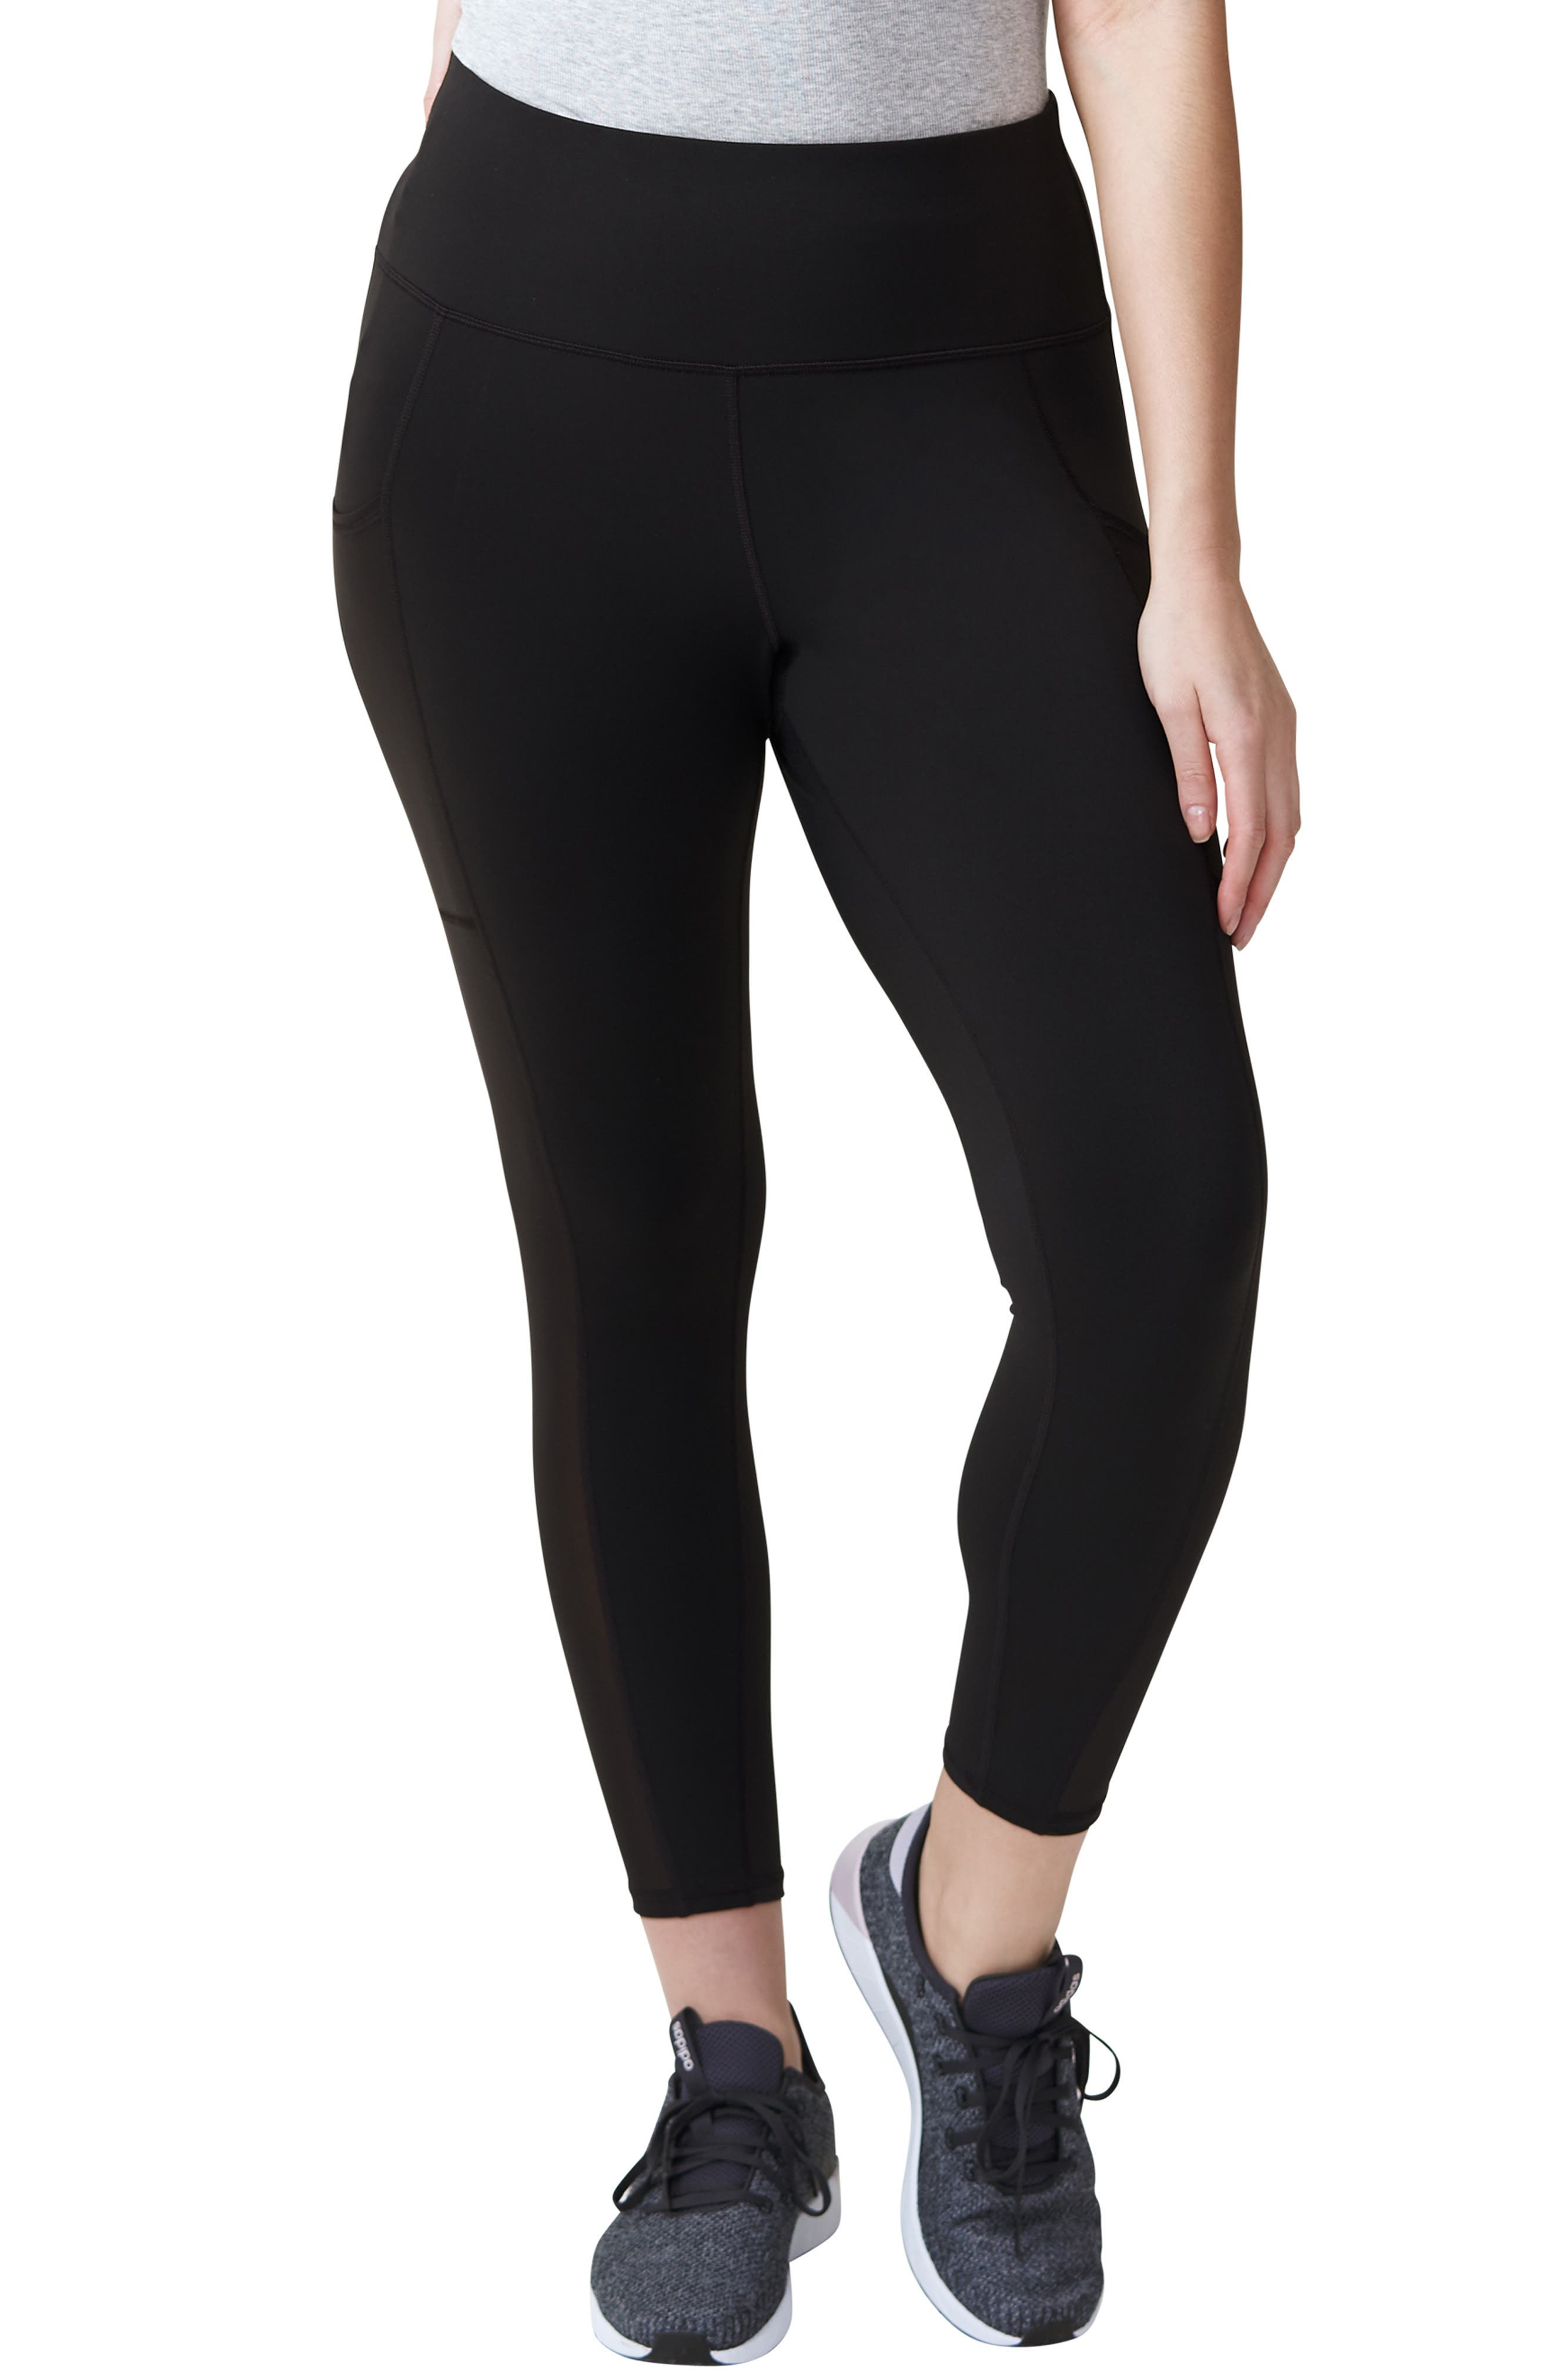 Plus Size Universal Standard Movement Mesh Crop Leggings, Size M (18W-20W) - Black